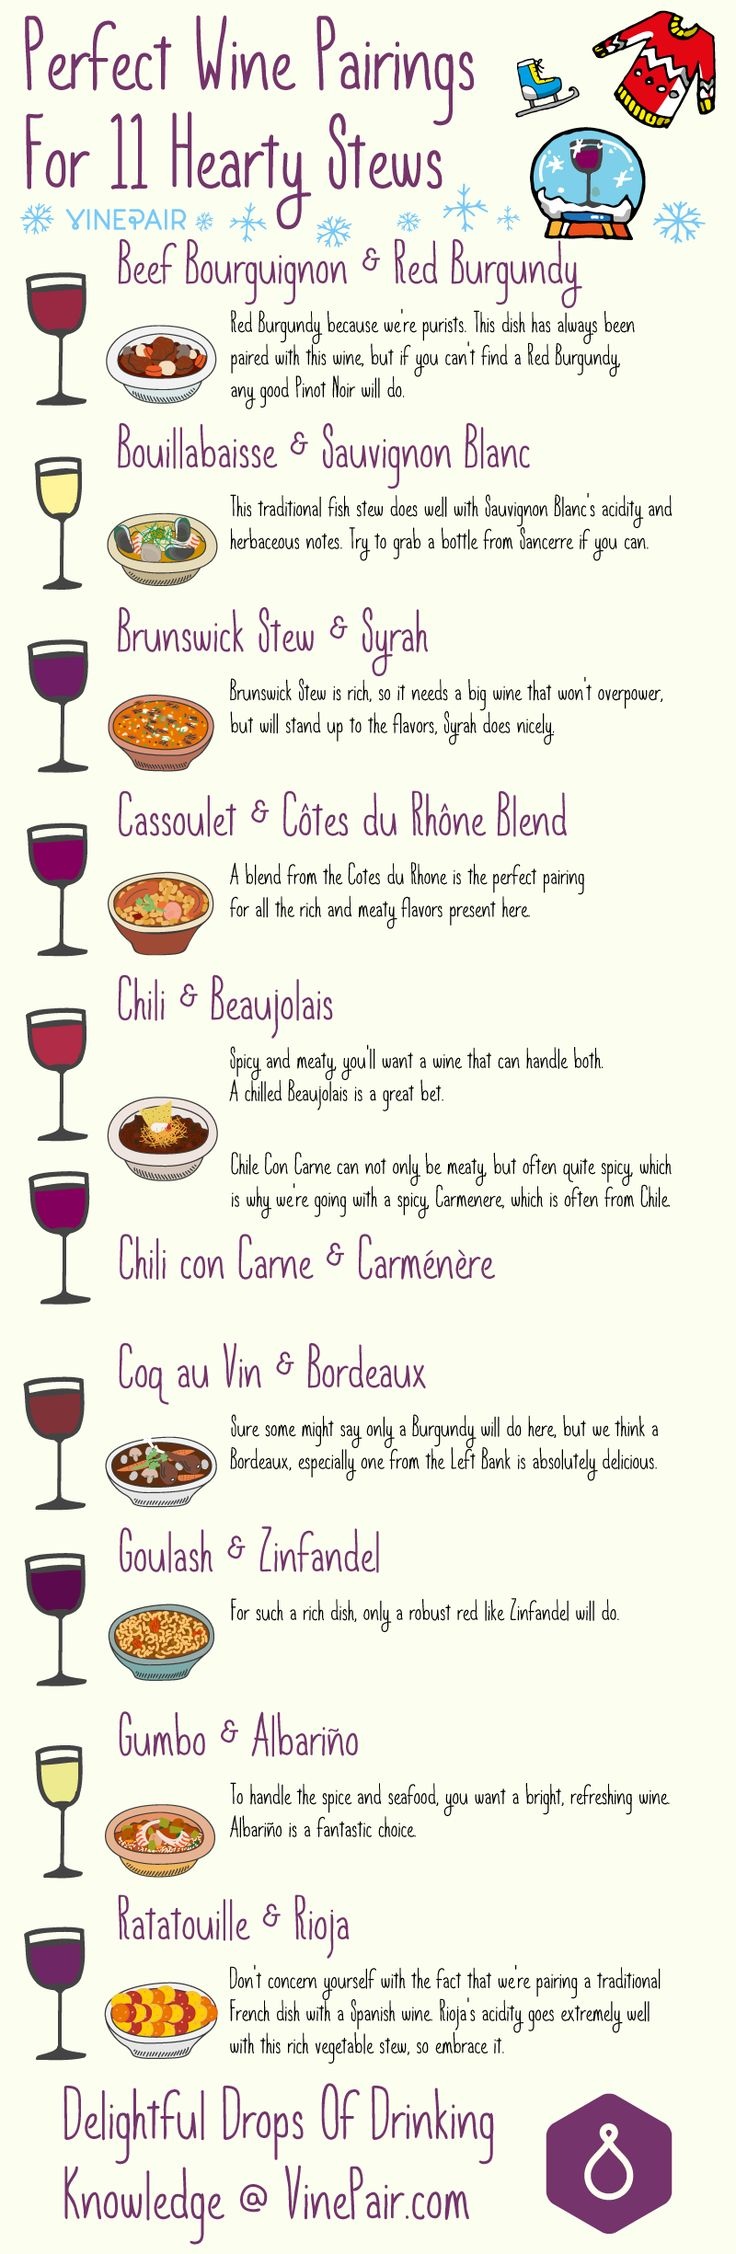 Perfect Wine Pairings For 11 Hearty Stews [INFOGRAPHIC] Now you can stay warm and cozy all winter long.